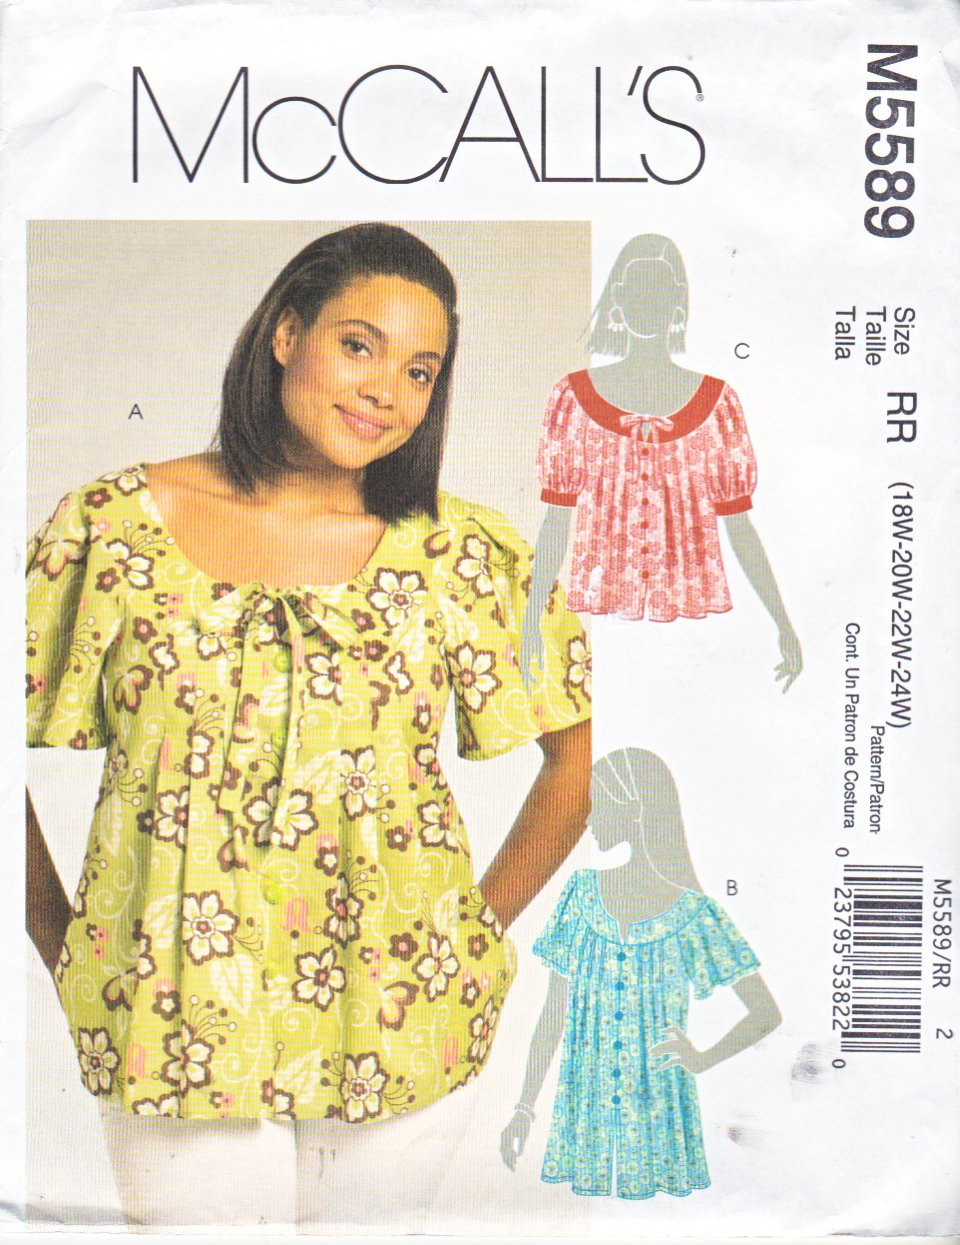 McCall's Sewing Pattern 5589 Womans Plus Size 18W-24W Loose-fitting Tops Tunics